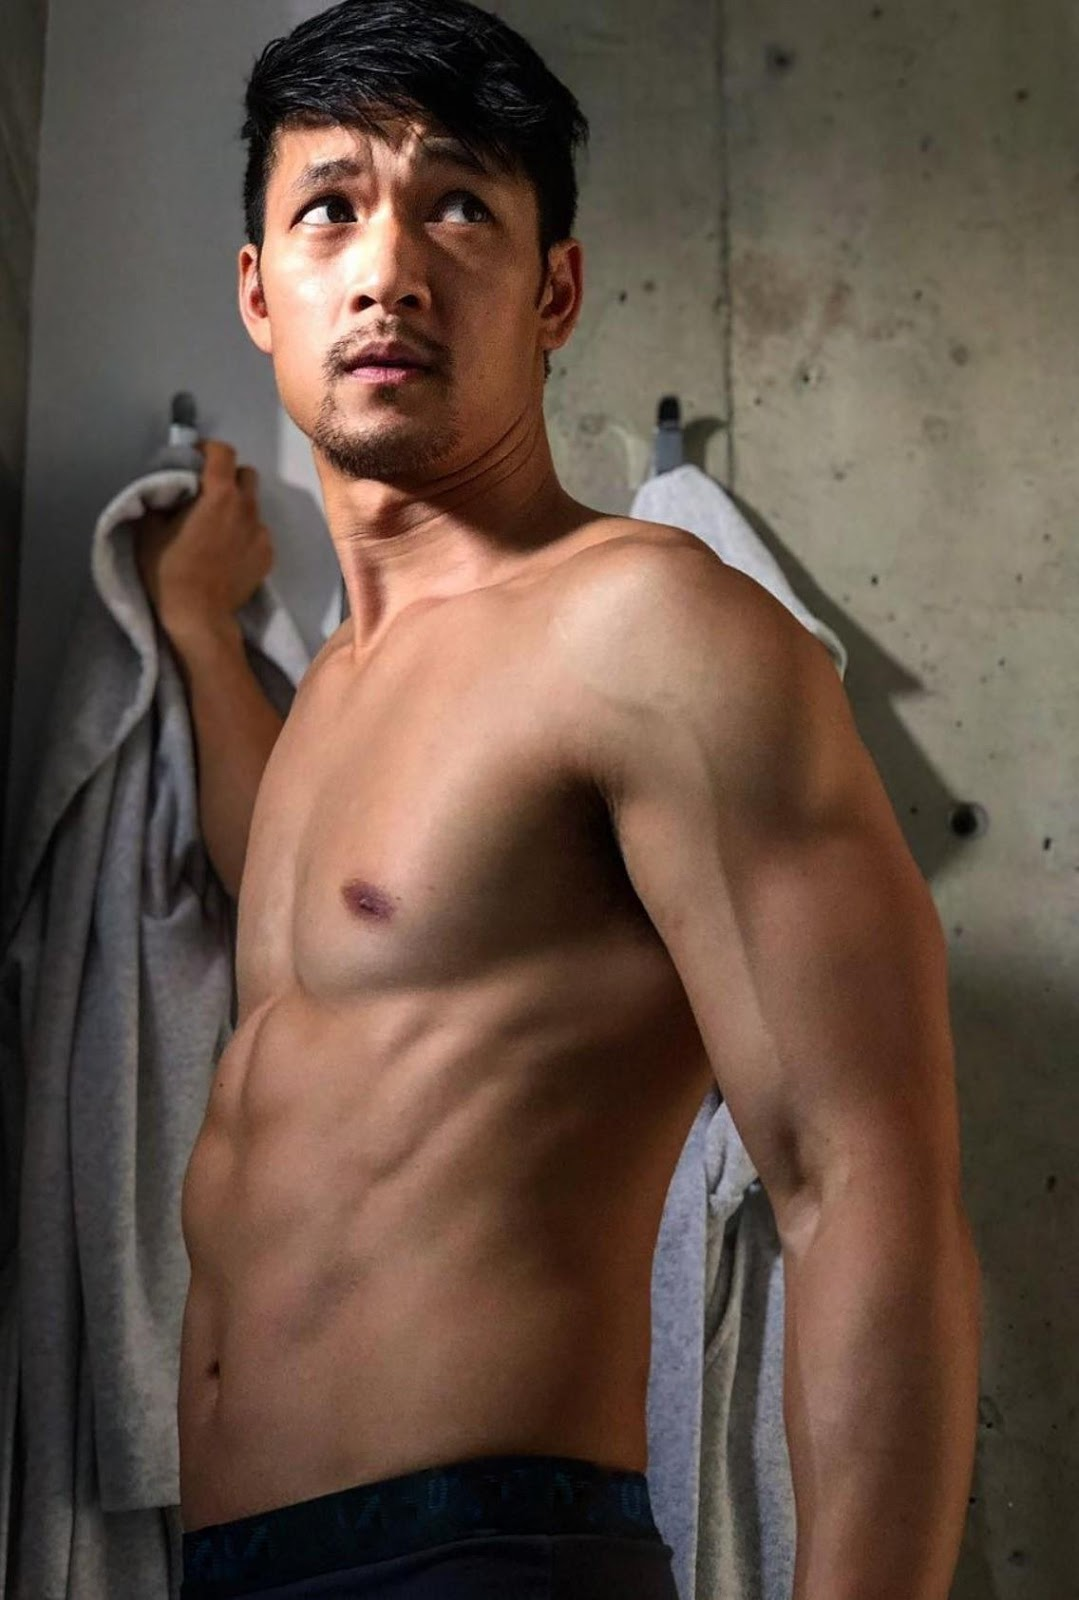 glee-actor-nude-shirtless-fit-body-sexy-asian-hunk-harry-shum-jr-photos